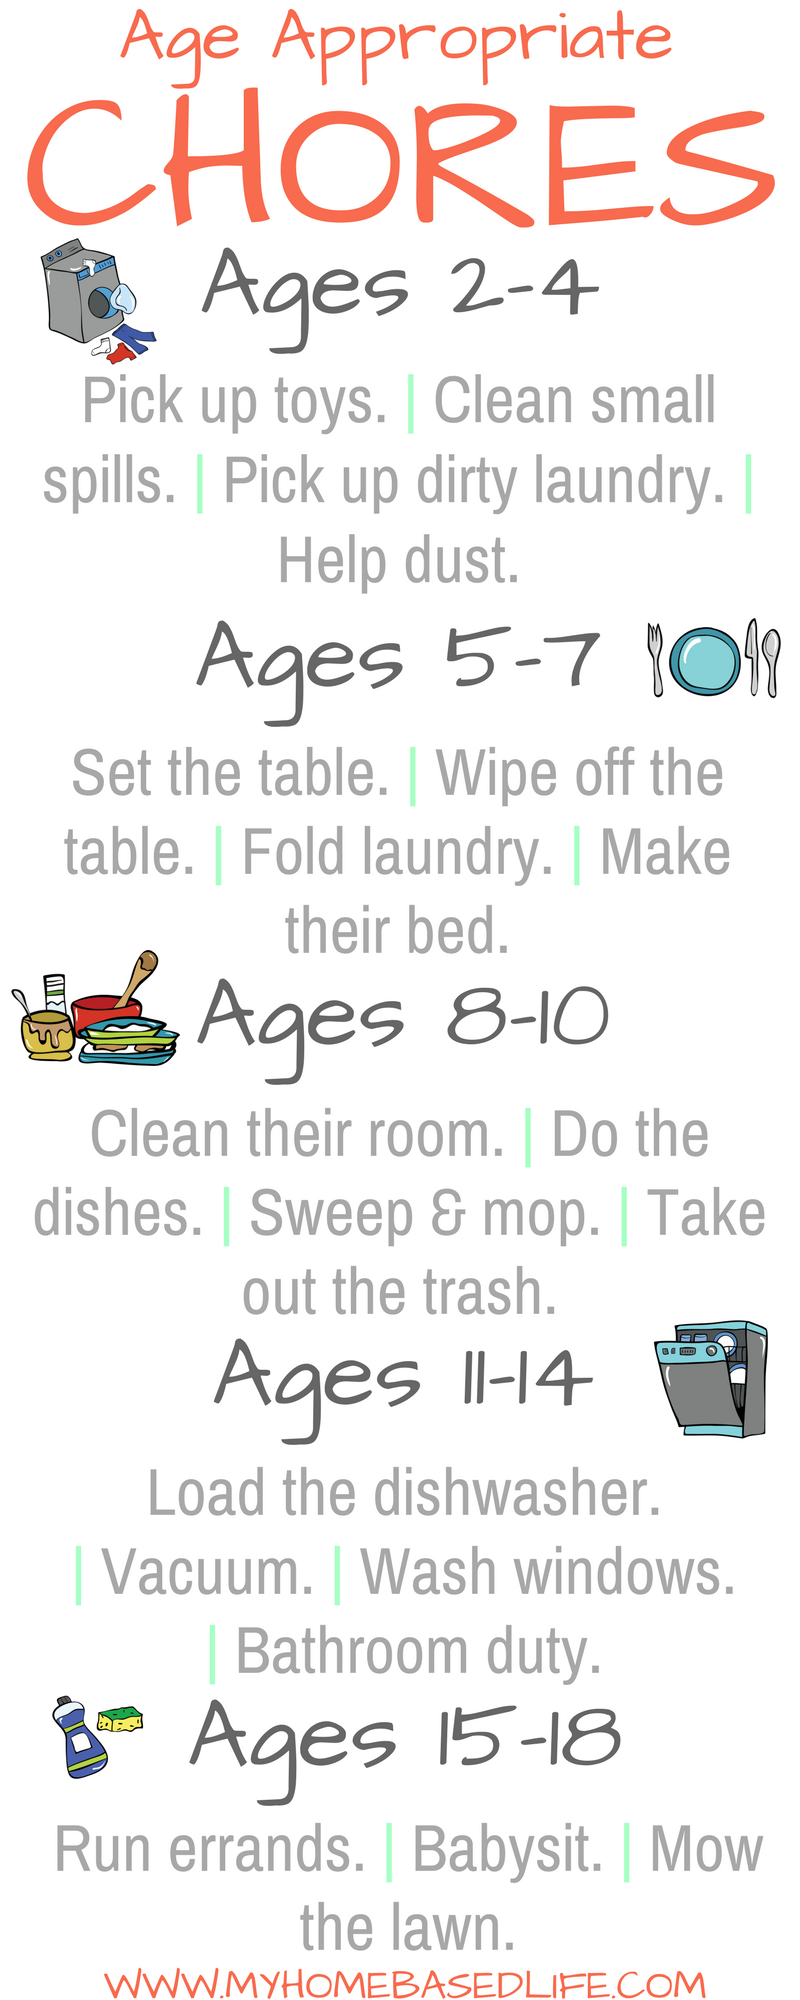 Age-Appropriate Kids Chores Broken down in simple terms | Kids Chores | Kids Responsibility | Chores for Kids | Chore Chart | Kids and Chores | Parenting | #parenting | #kidschores